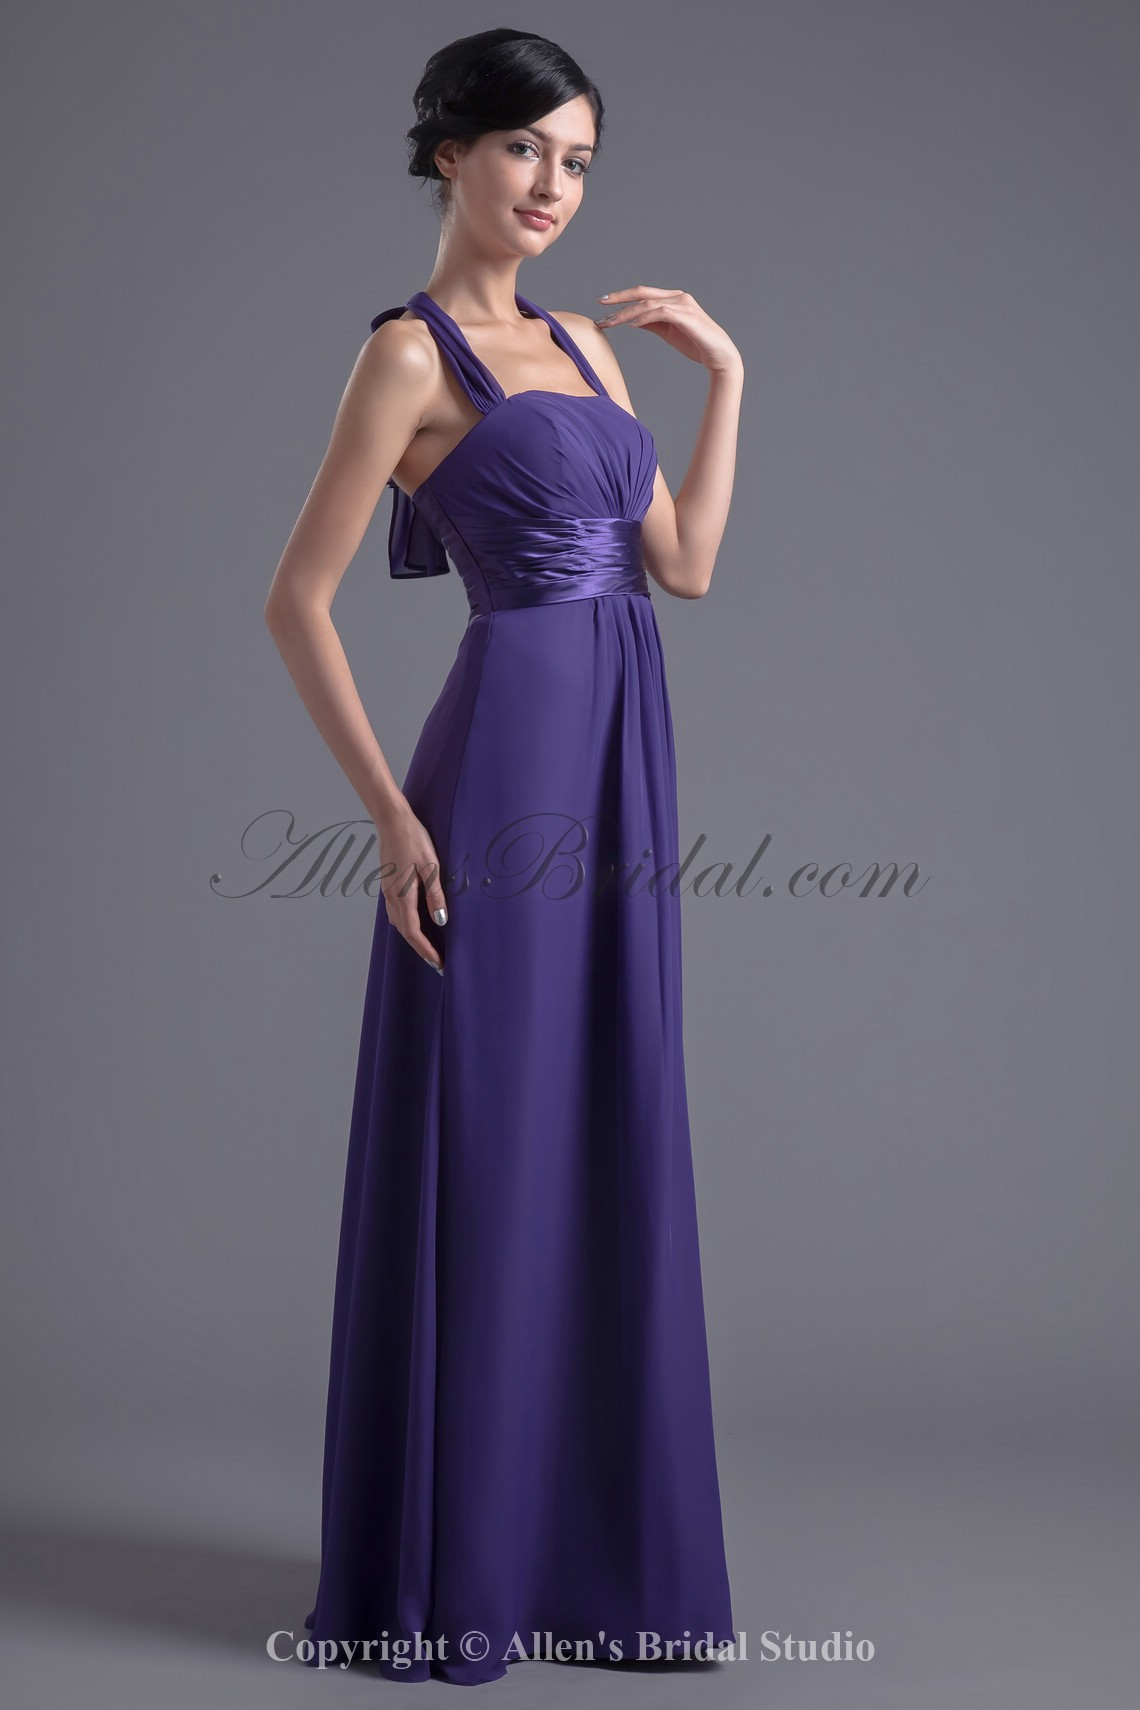 /10-74/chiffon-halter-neckline-column-floor-length-prom-dress.jpg